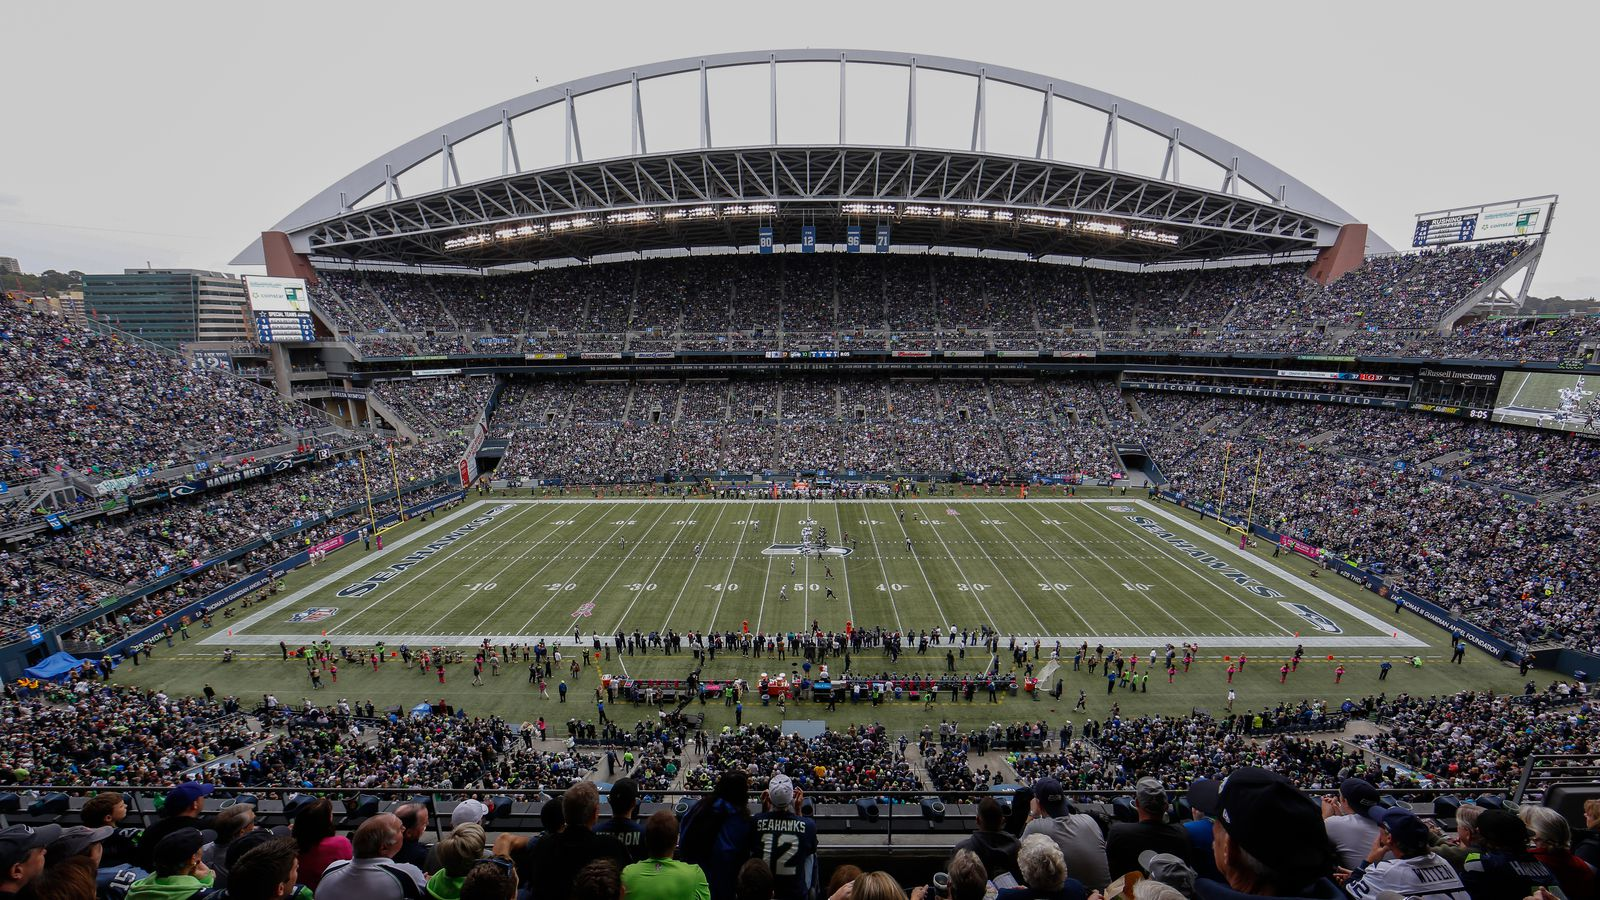 seahawks cardinals game live stream free odds seahawks